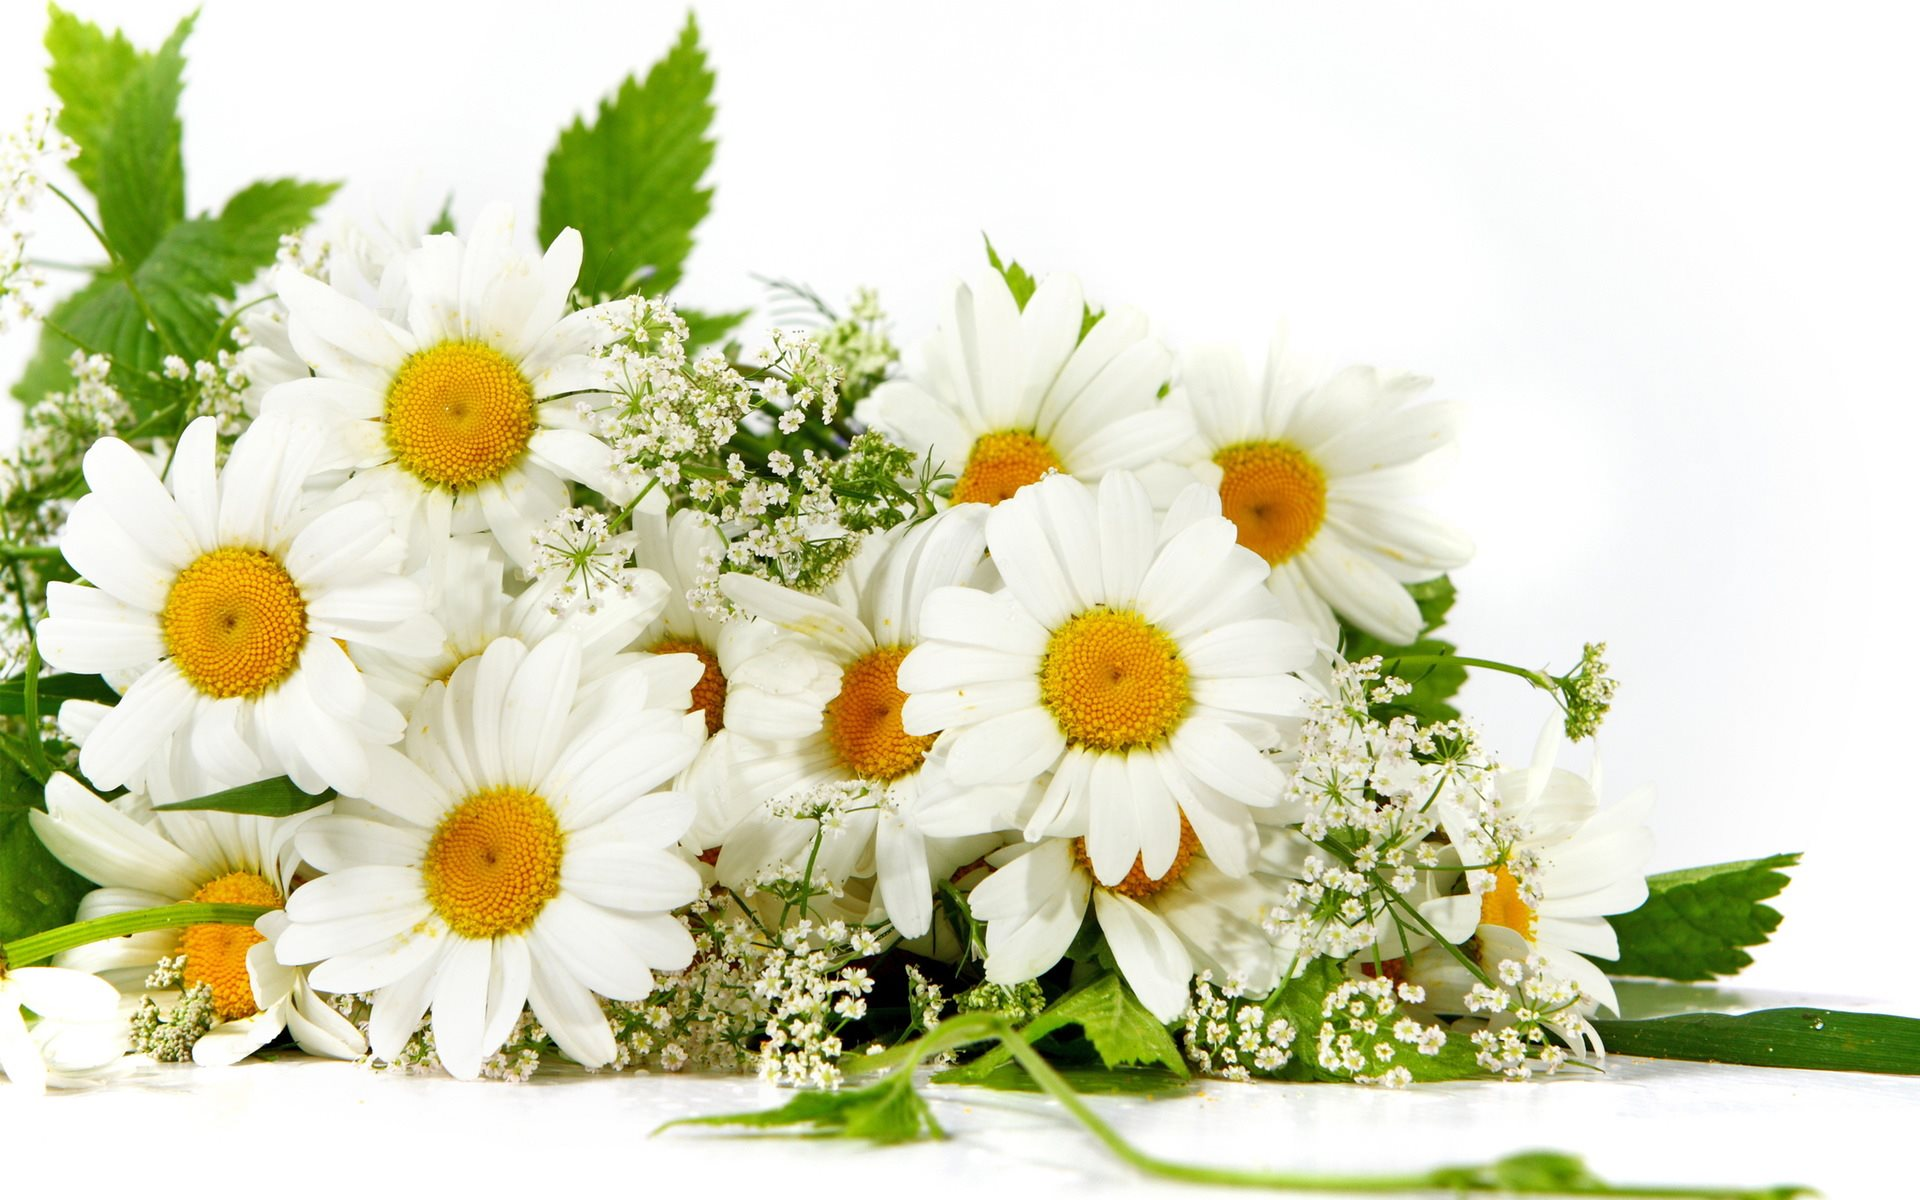 New year flowers- daisies